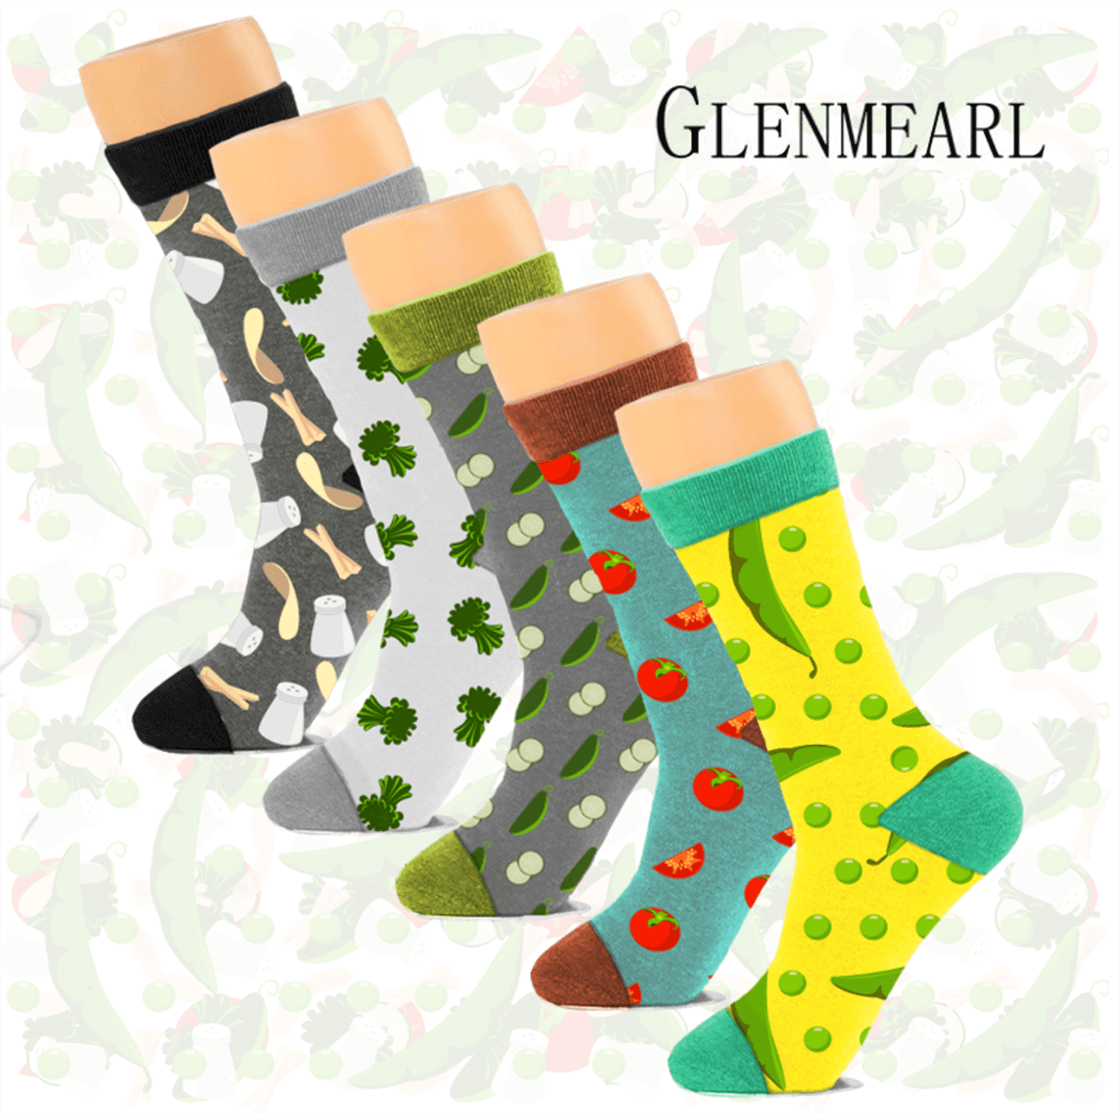 socks designed by almedin_